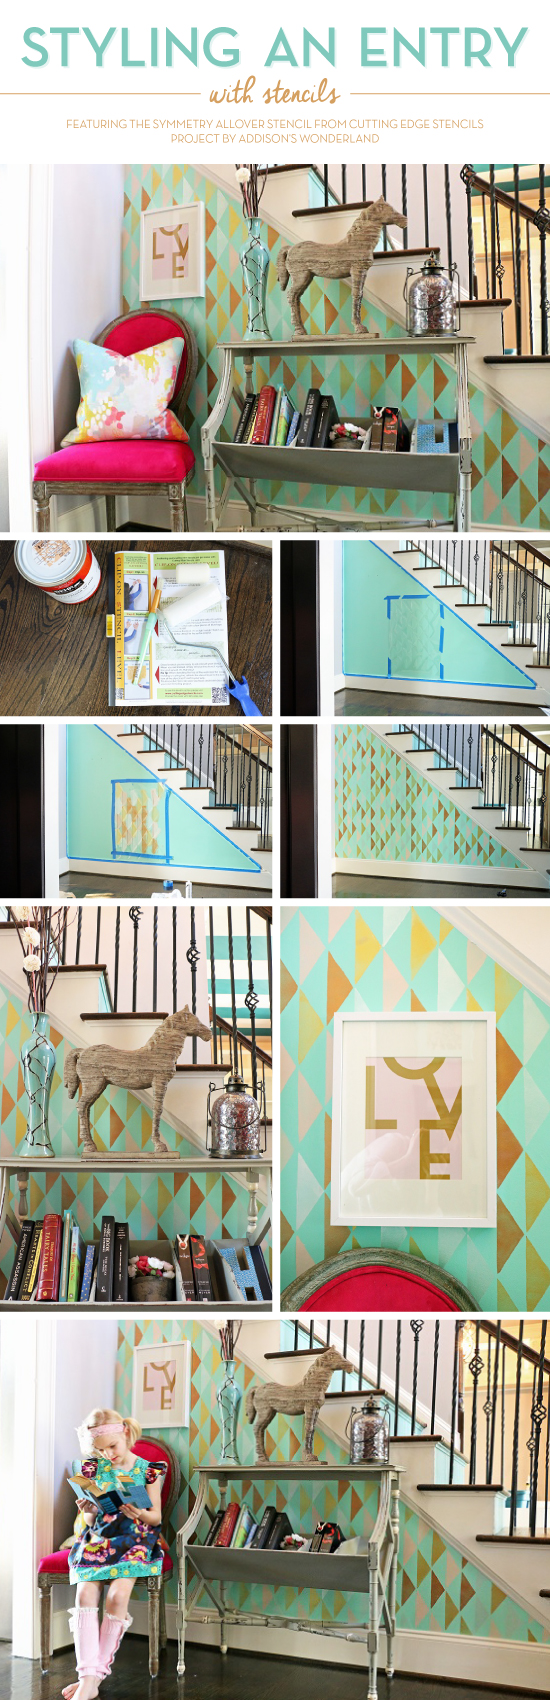 Cutting Edge Stencils share a DIY stenciled entryway using the Symmetry Allover stencil pattern on an entryway wall. http://www.cuttingedgestencils.com/symmetry-geometric-stencil-pattern.html